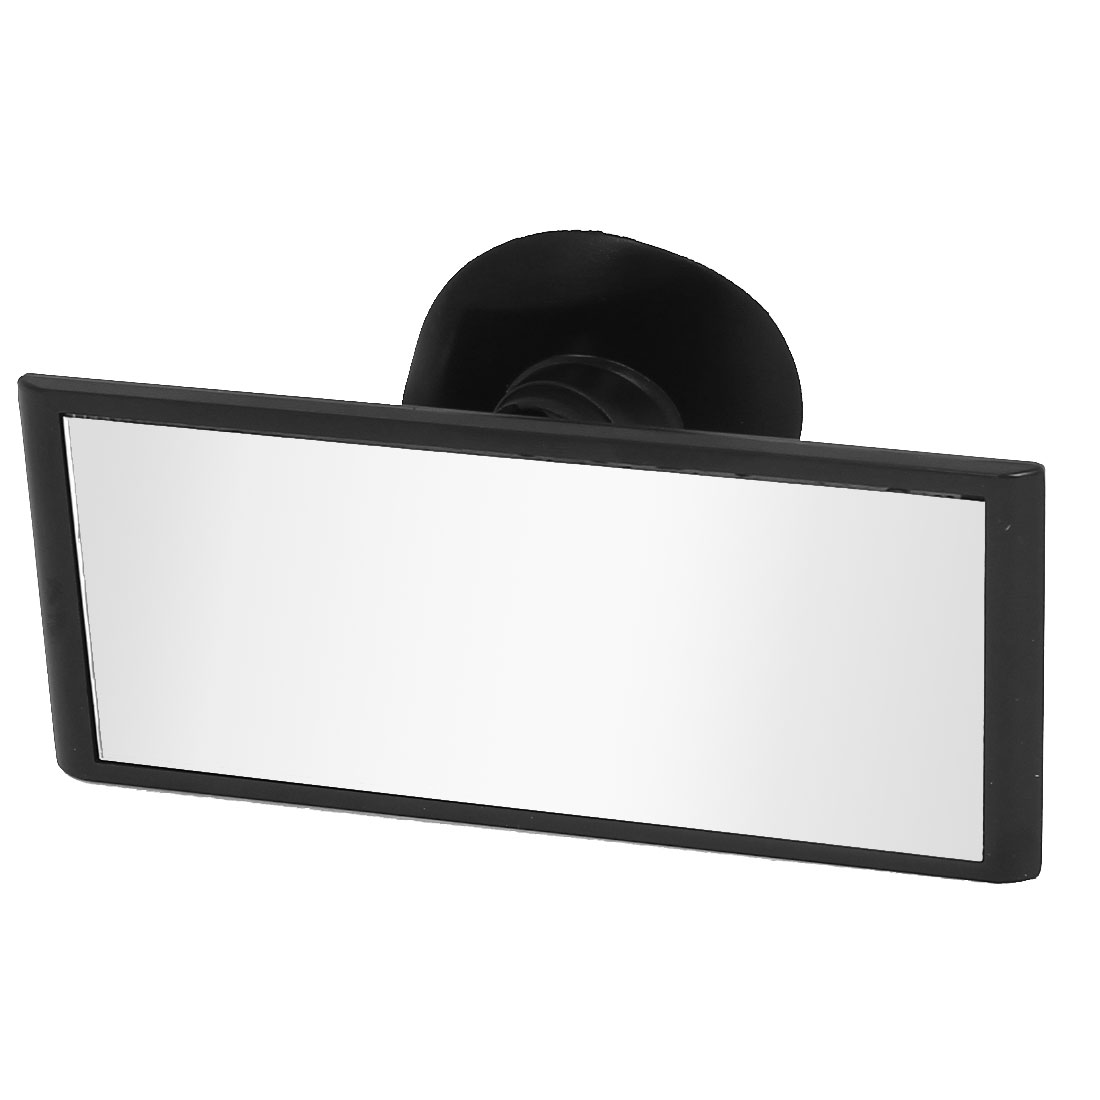 Black Suction Rectangle Flat Car Truck Windshield Rear View Mirror Blind Spot Parking Rearview